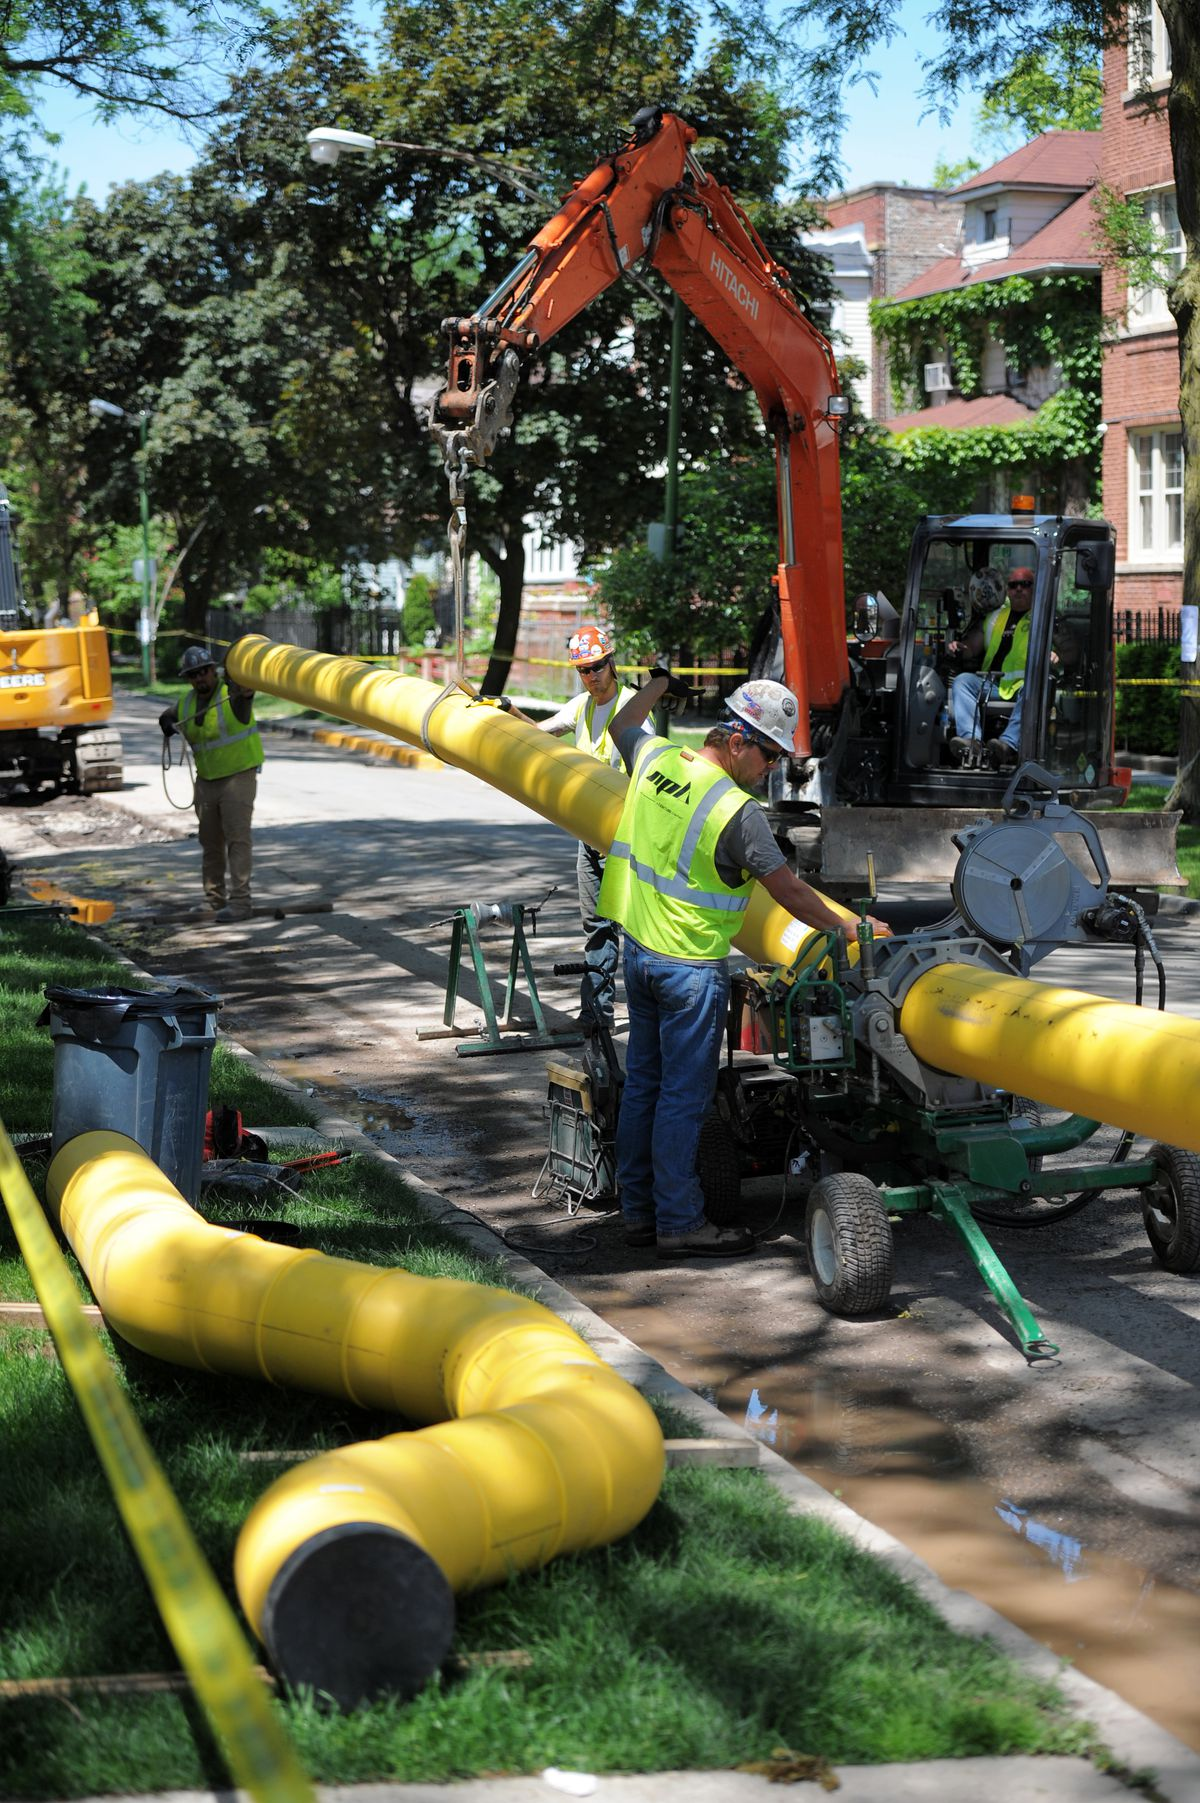 Workers stand over new gas pipelines to be installed on an Albany Park street in a photo taken last summer. Spending for the project has ballooned over the years and could ultimately cost $8 billion to $11 billion.